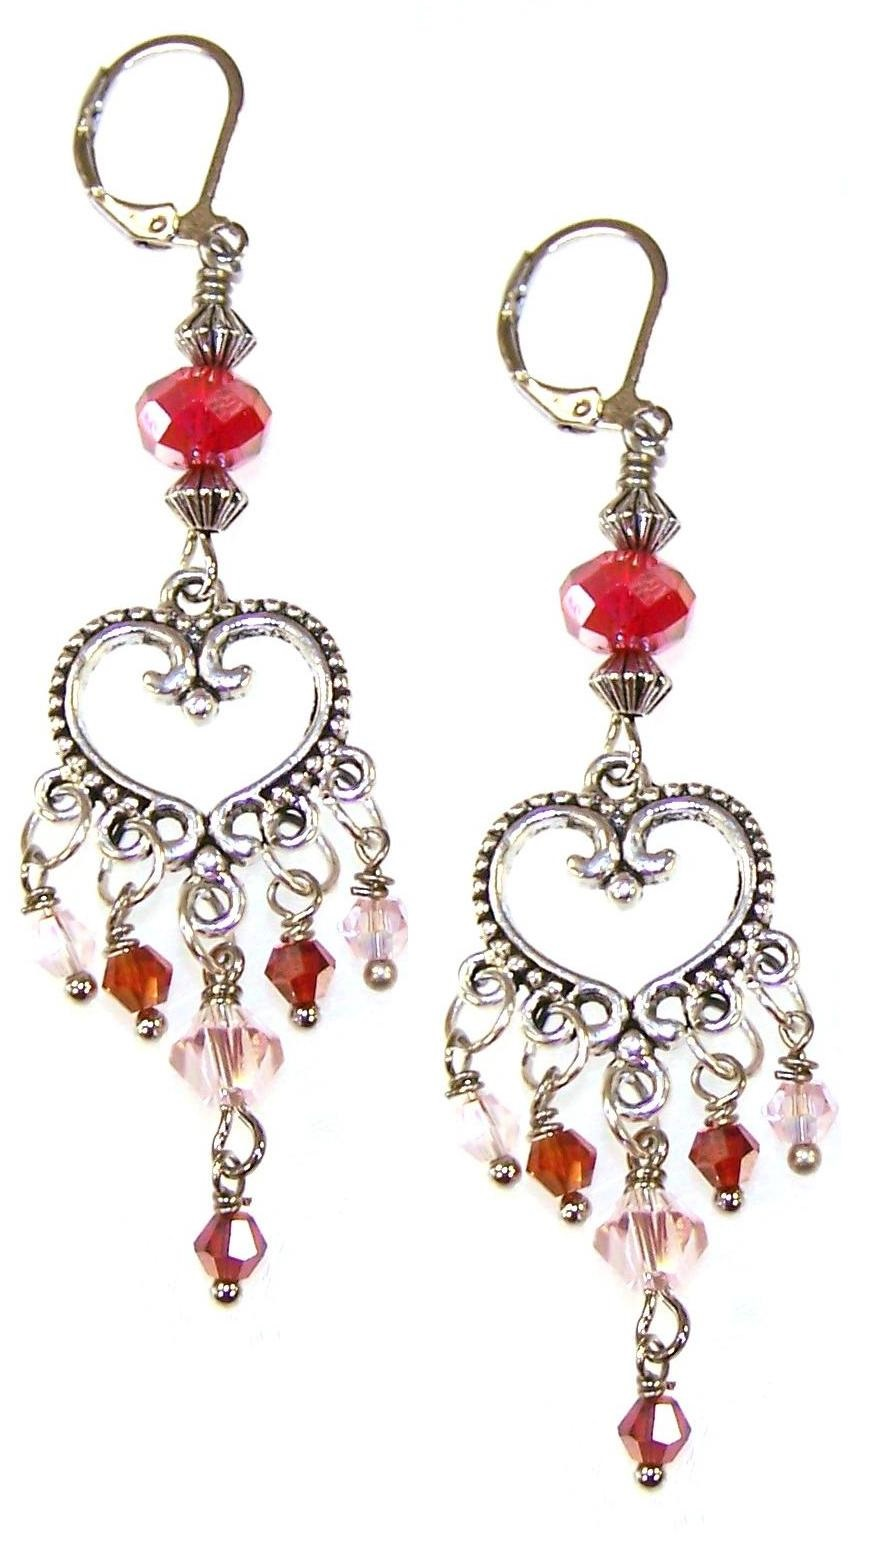 Everlasting Romance Earrings Free Beaded Jewelry Making Pattern